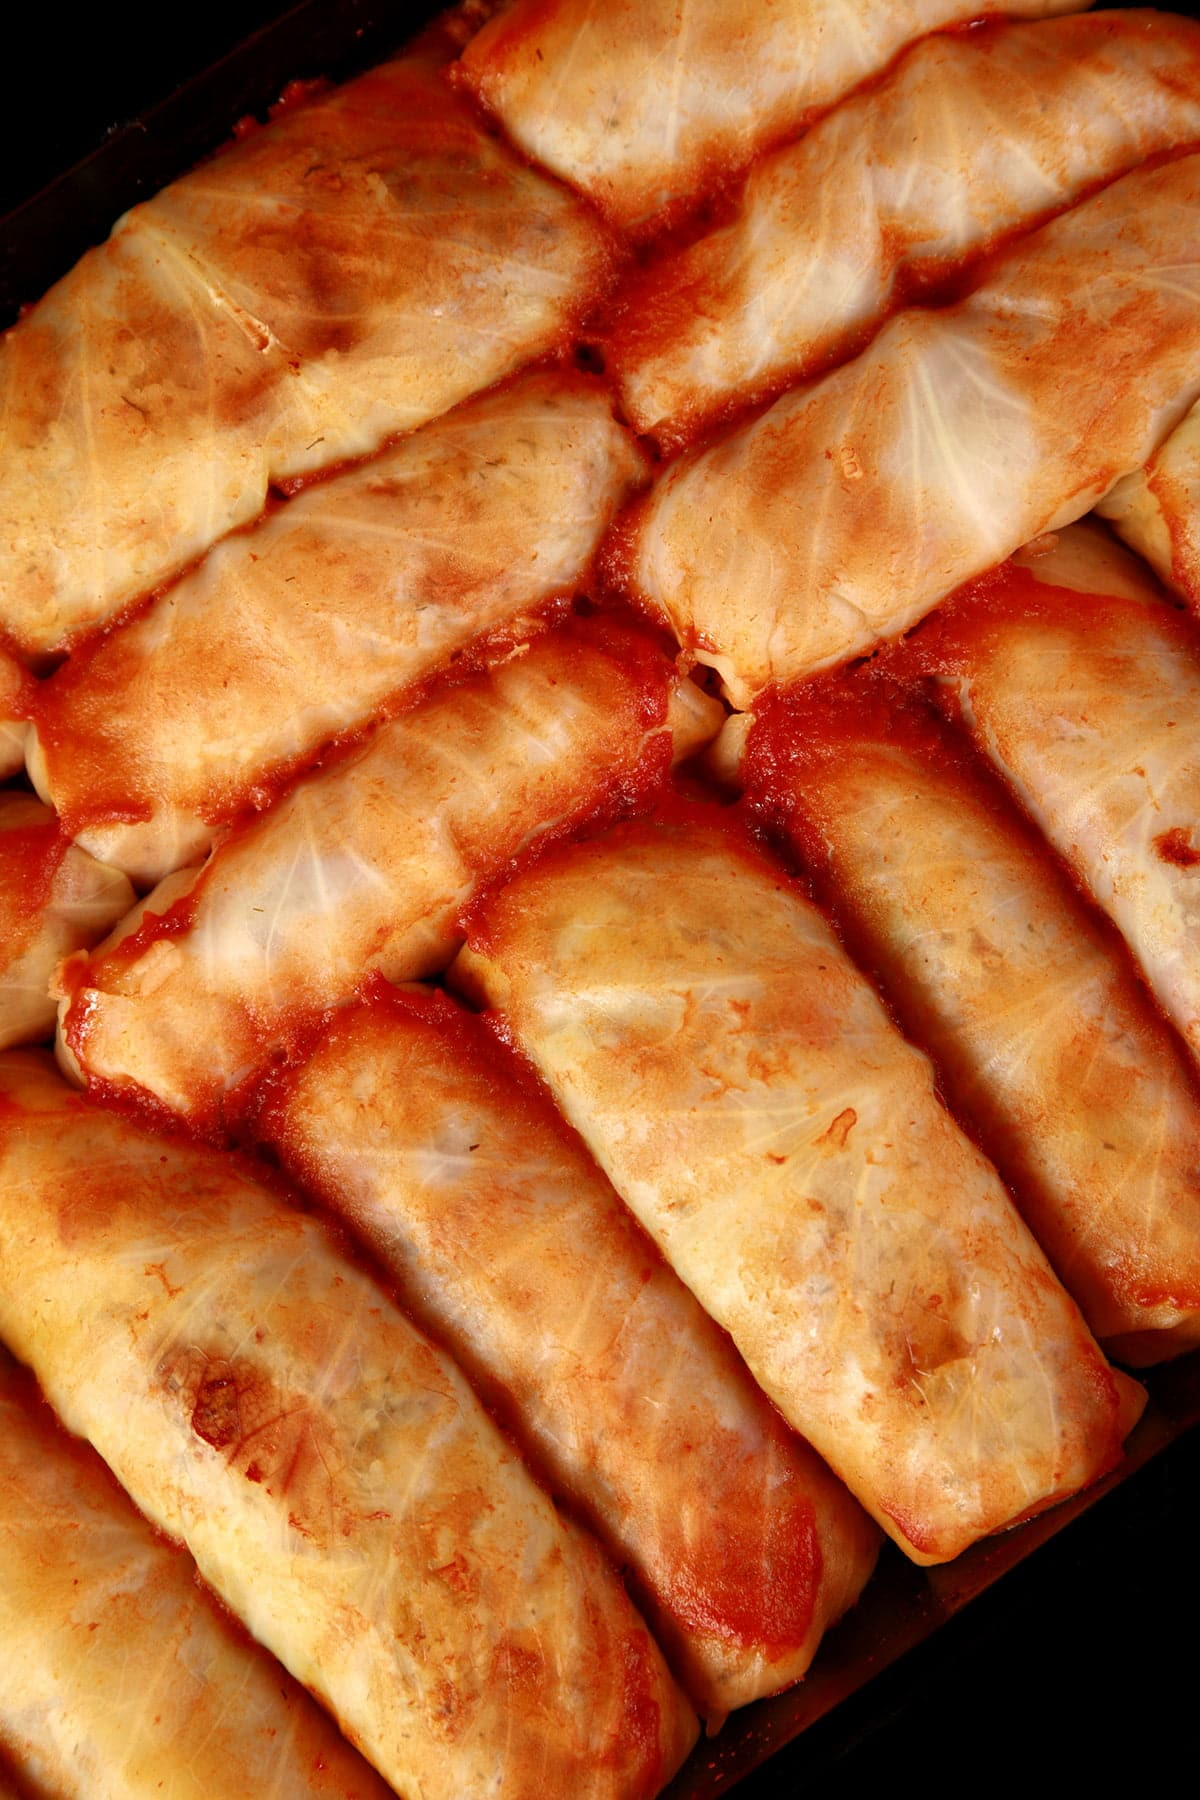 A close up view of a pan of V* covered cabbage rolls.